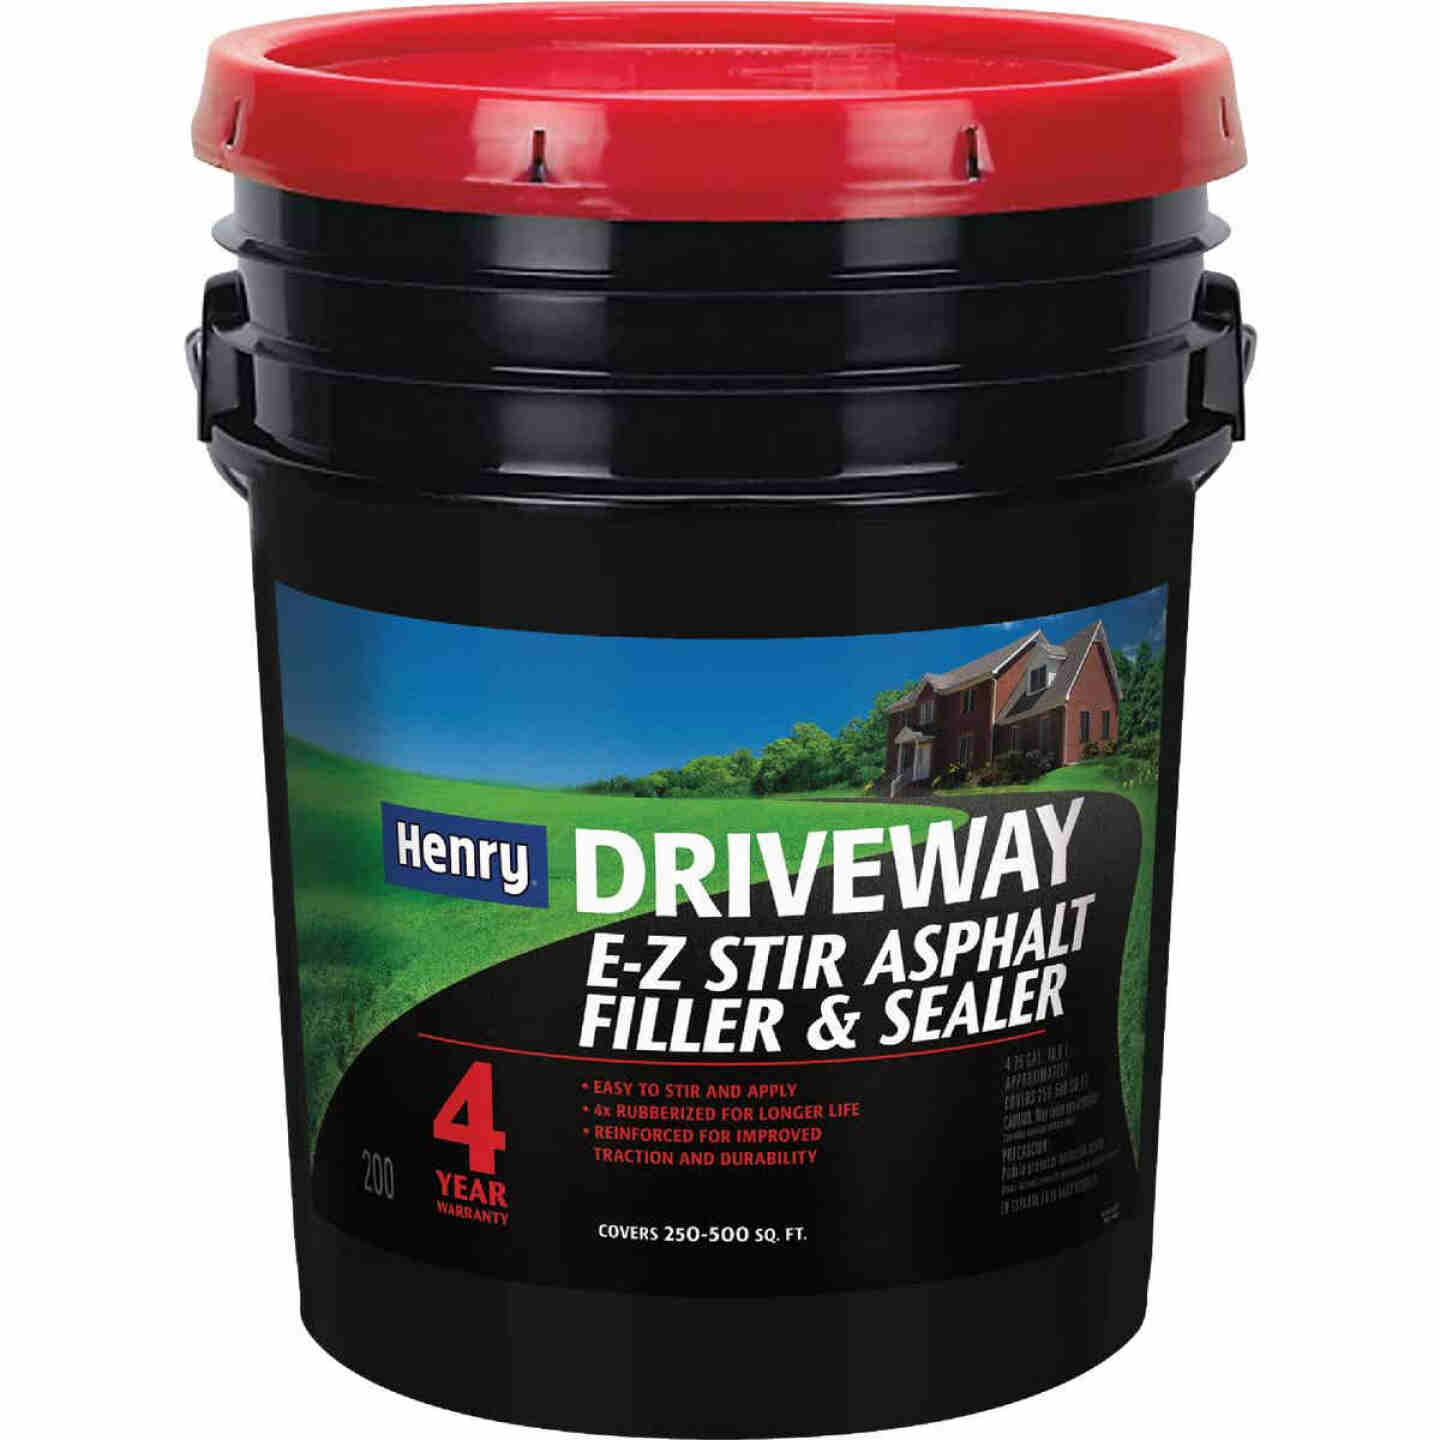 Henry 4.75 Gal. Blacktop Driveway Filler and Sealer, 4 Year Image 1